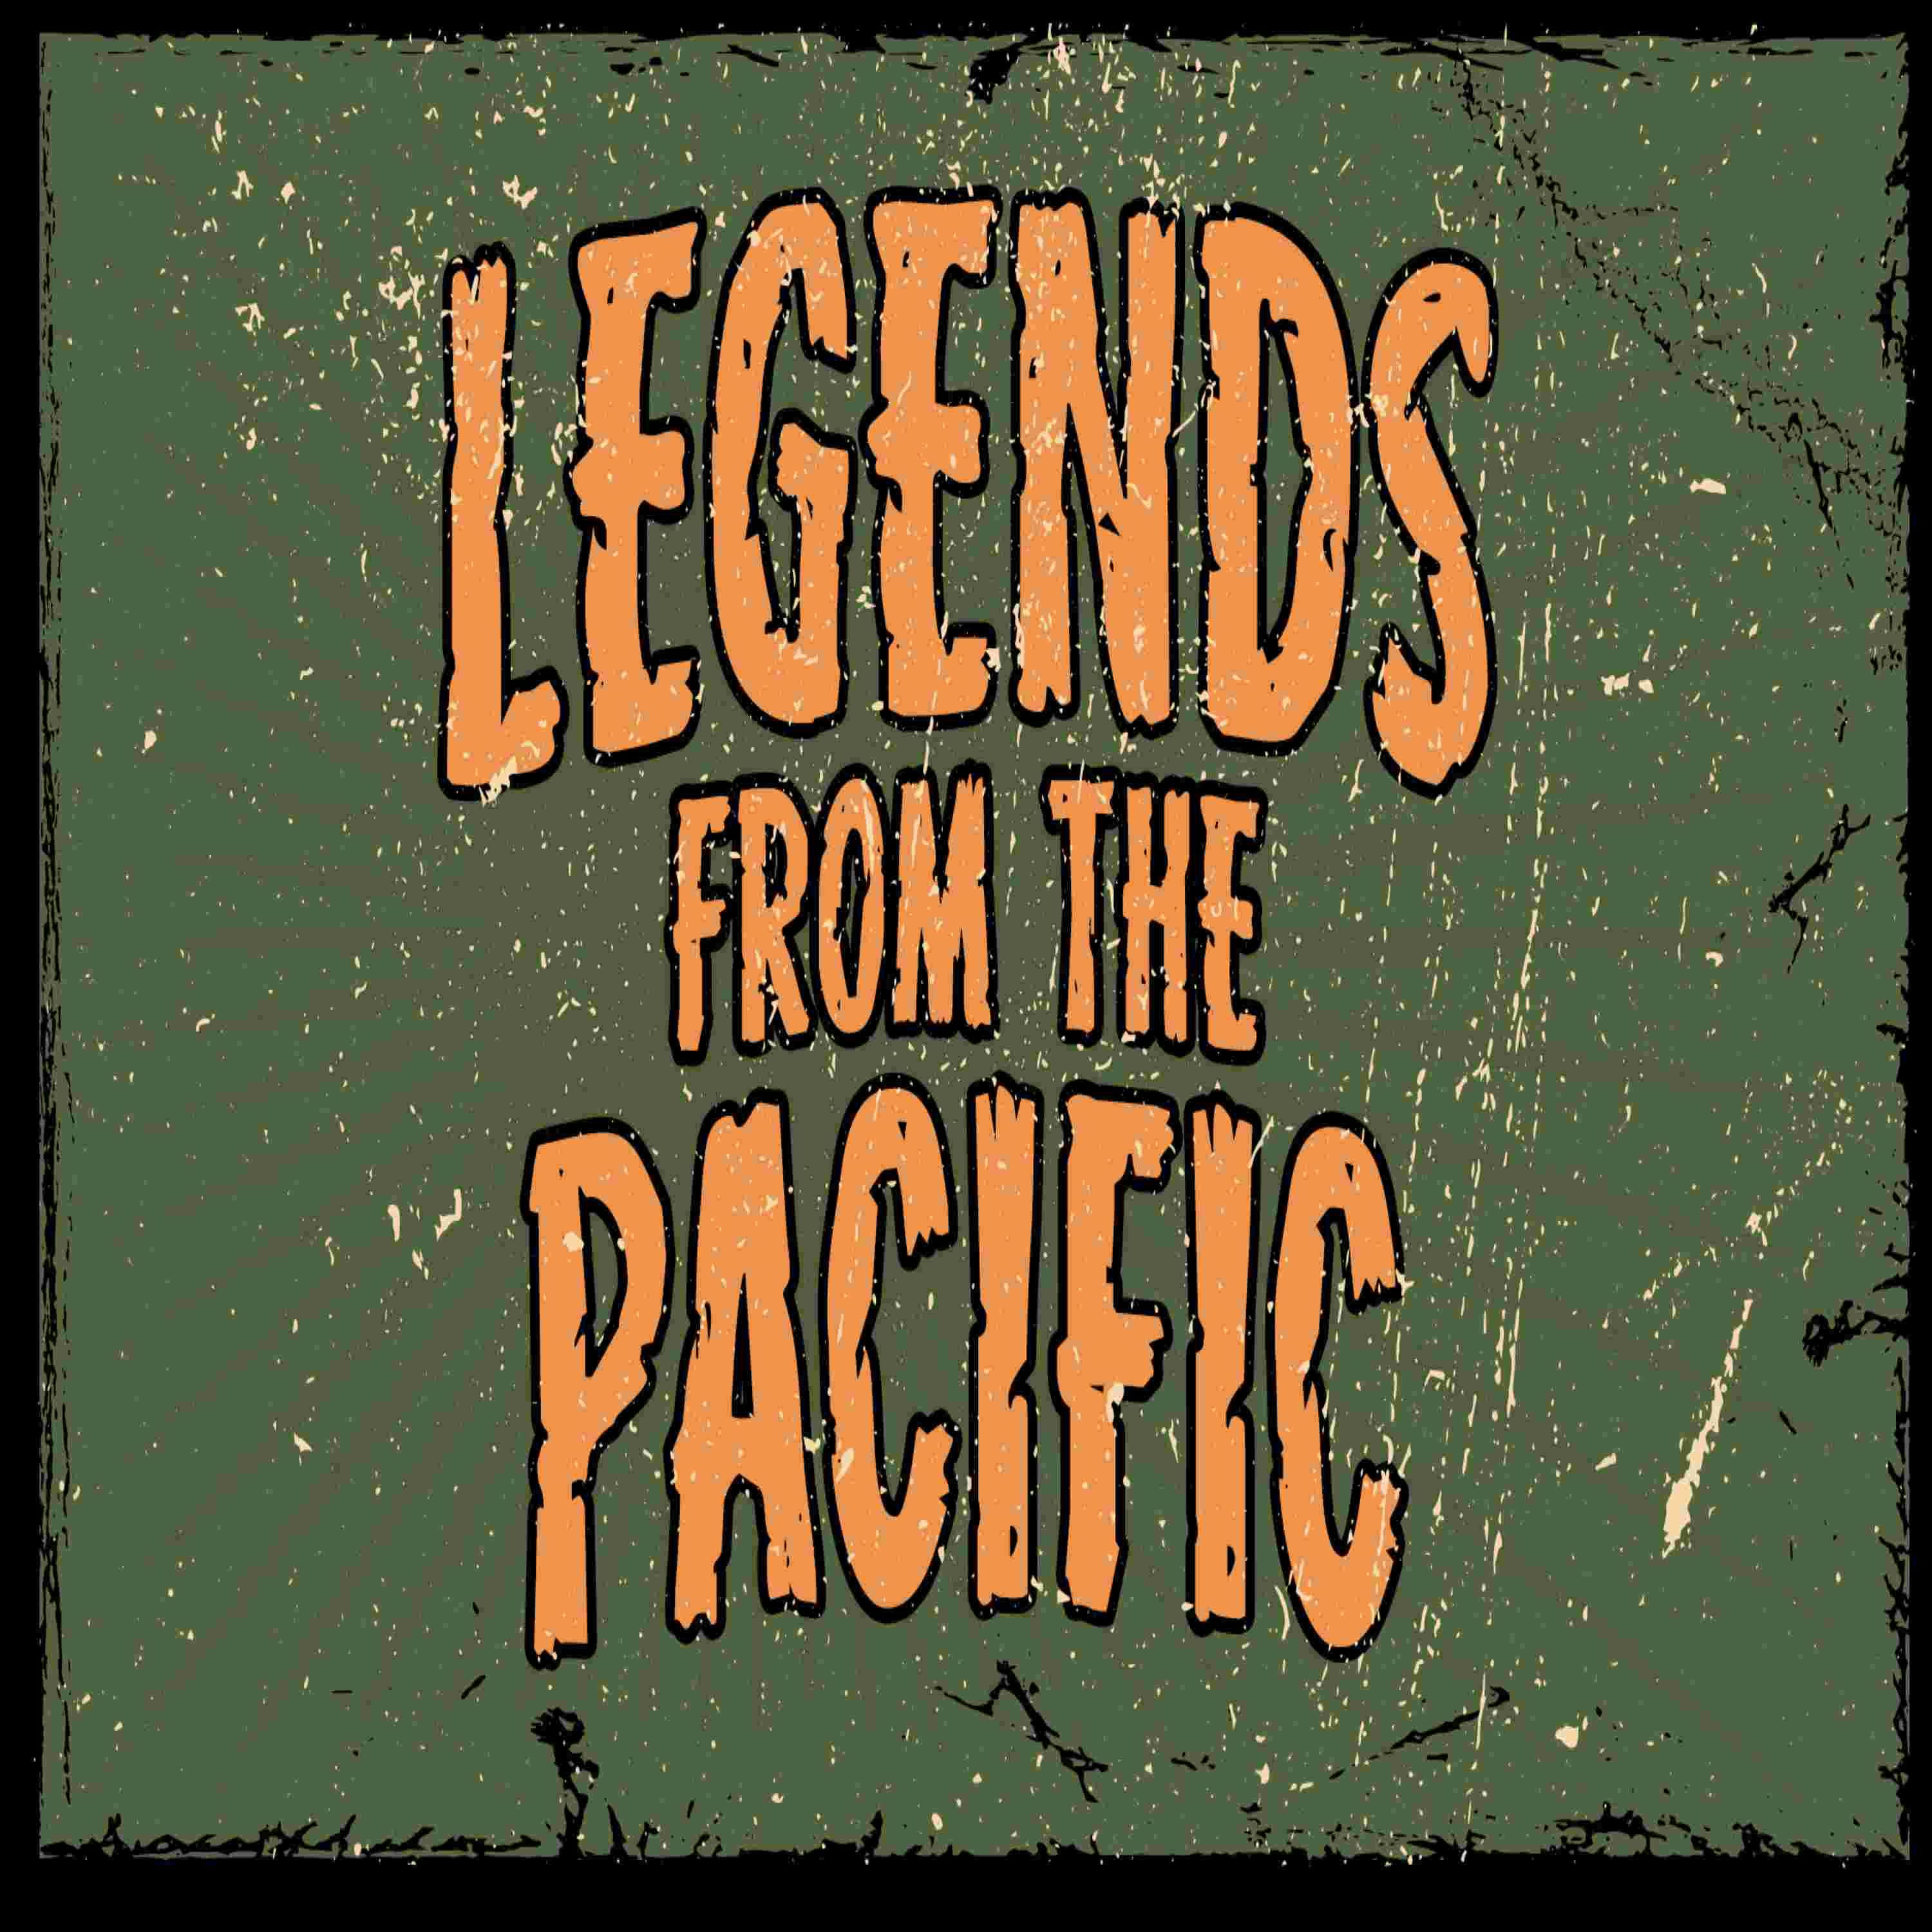 59: Before America's Cowboys, there were Hawaii's Paniolos show art